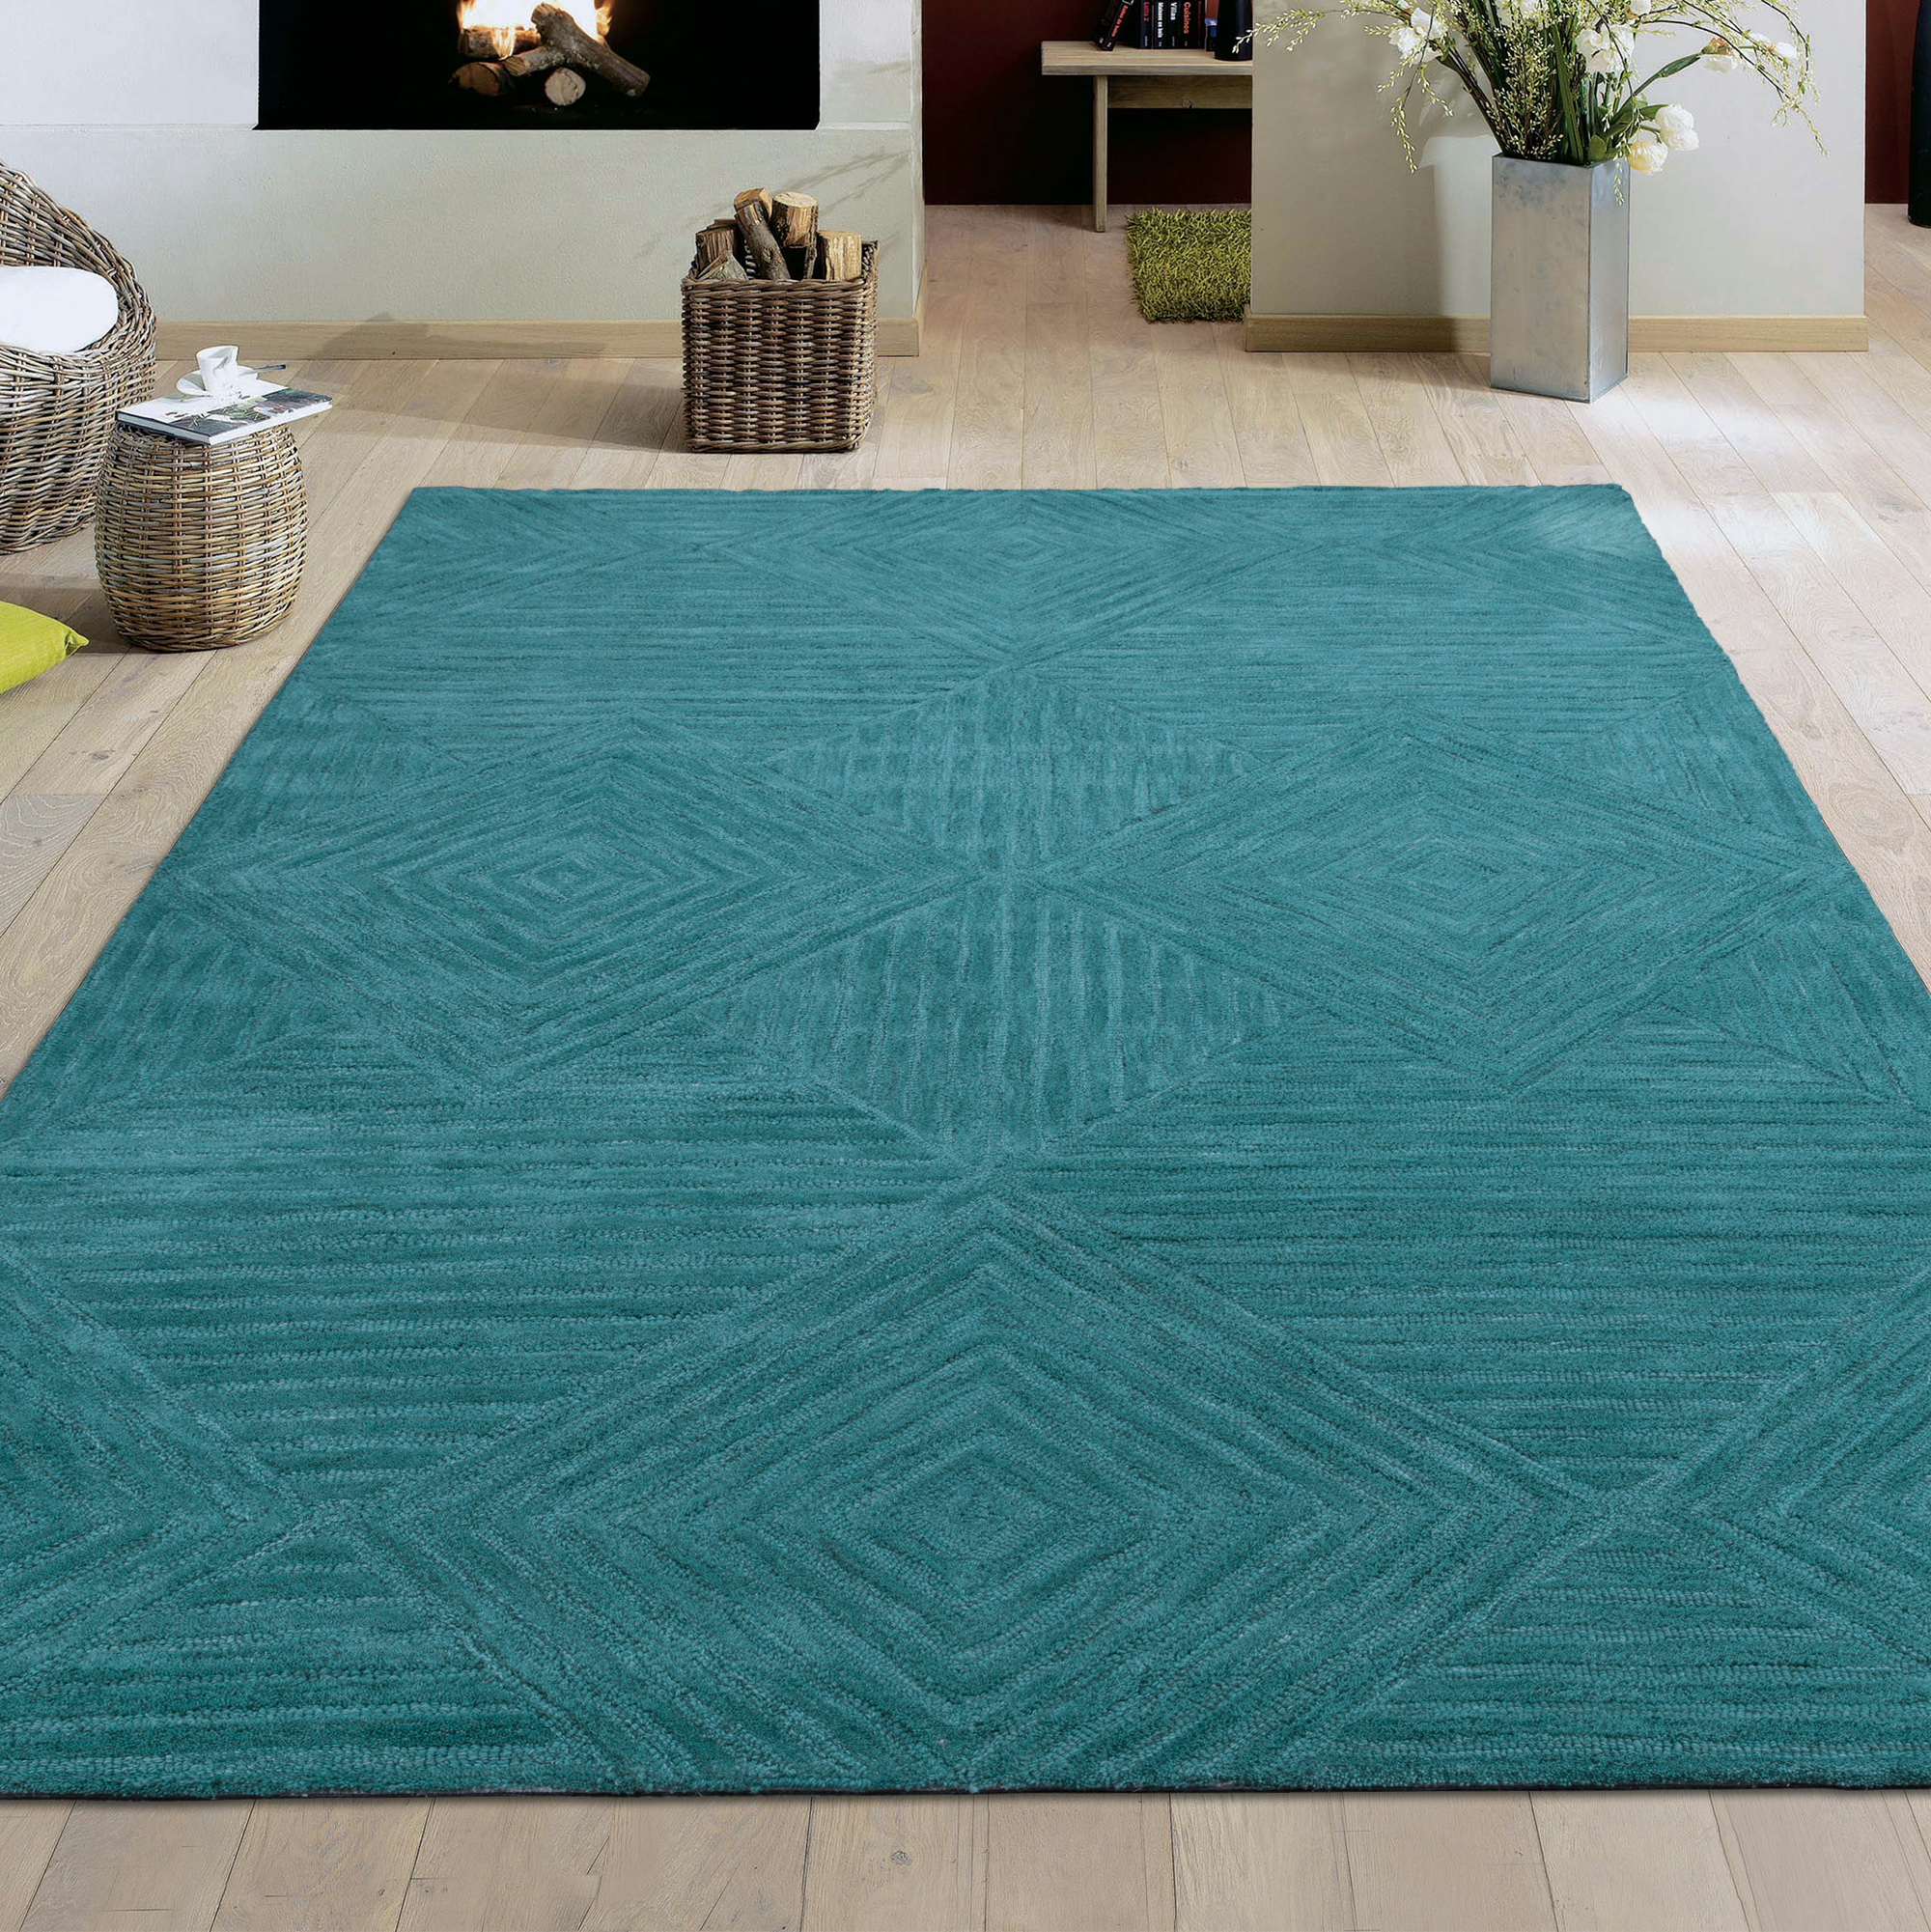 Ottomanson Hand-Tufted Hampton Collection Natural Wool Geometric Diamond Mosaic Rug, Teal, 5' X 7'